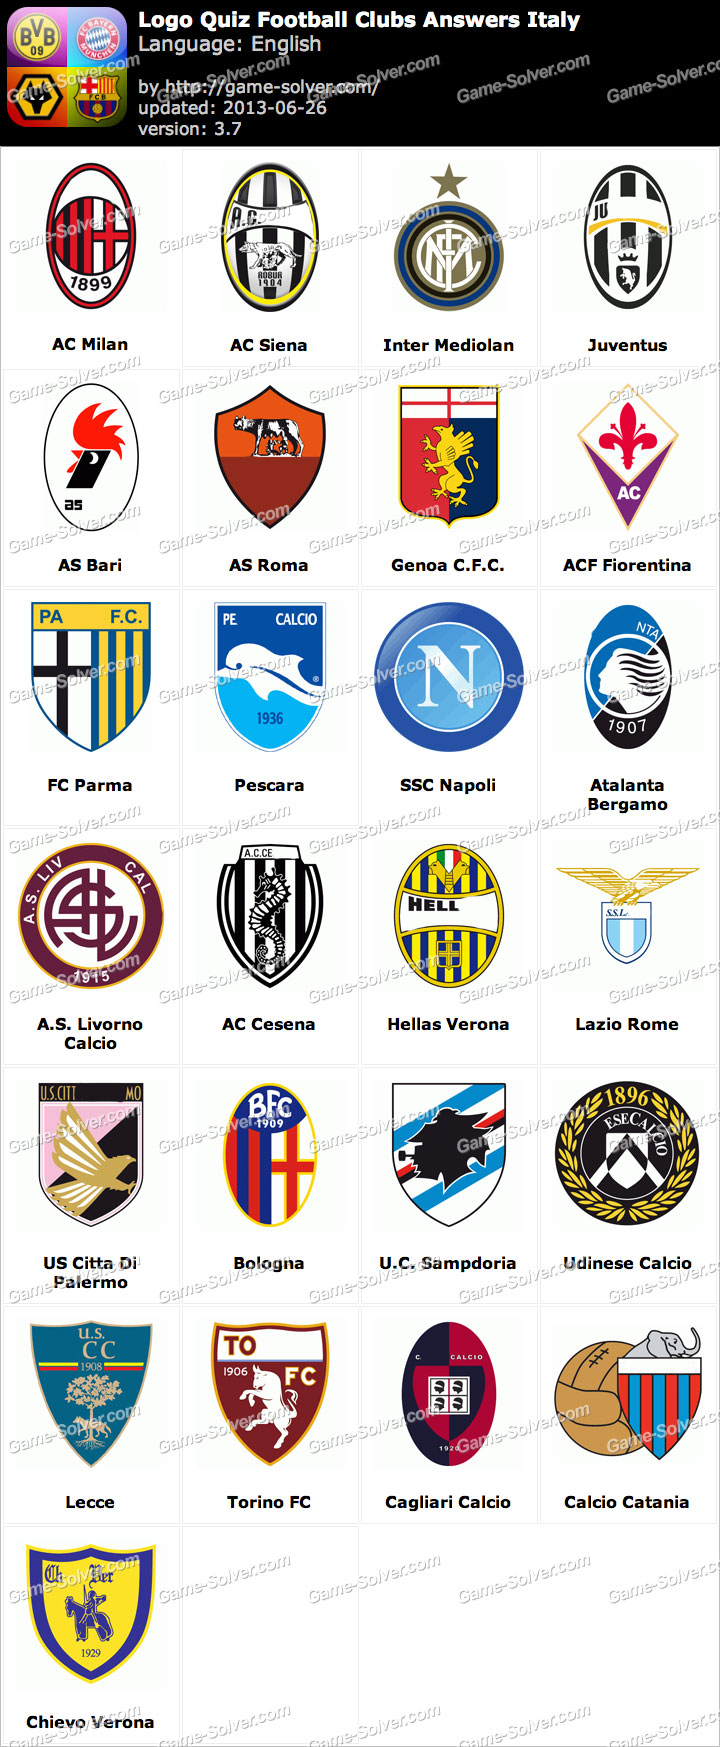 Logo Quiz Football Clubs Answers Italy